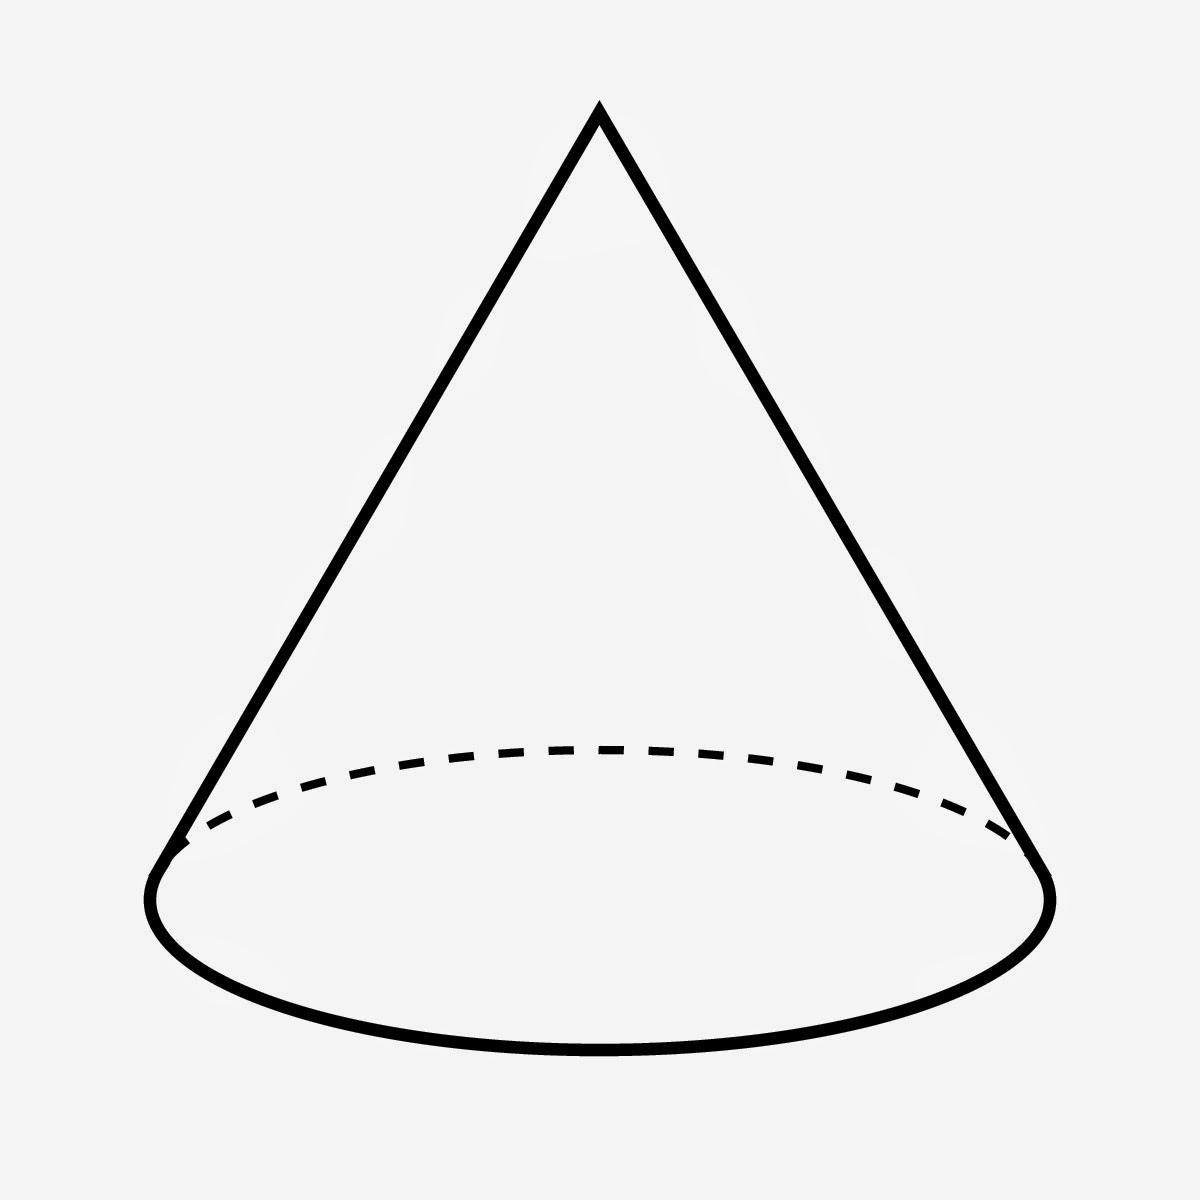 Clarifying Confusing College Calculations 3d Geometry